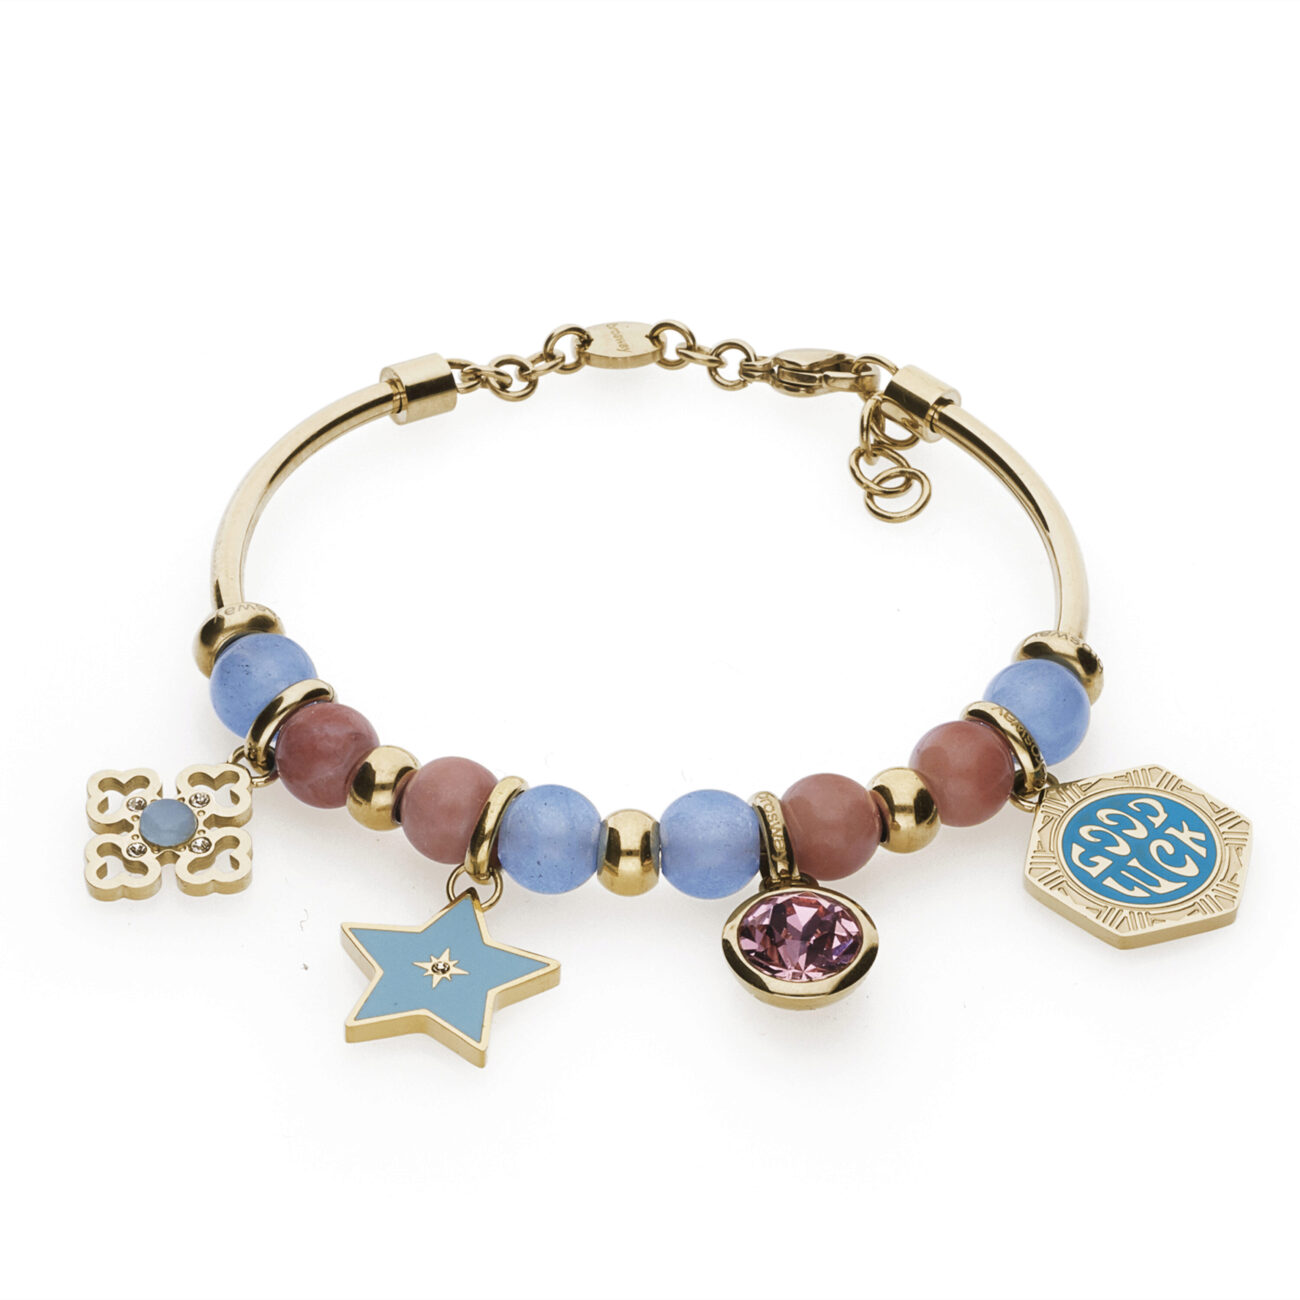 """316L stainless steel and gold pvd bangle, with blue jade, red aventurine stones, gold pvd beads with Swarovski© elements and cabochon amazonite, star-shaped beads with light blue enamel, beads with pink Swarovski© element and gold pvd beads with """"Good luck"""" engraving and green enamel."""